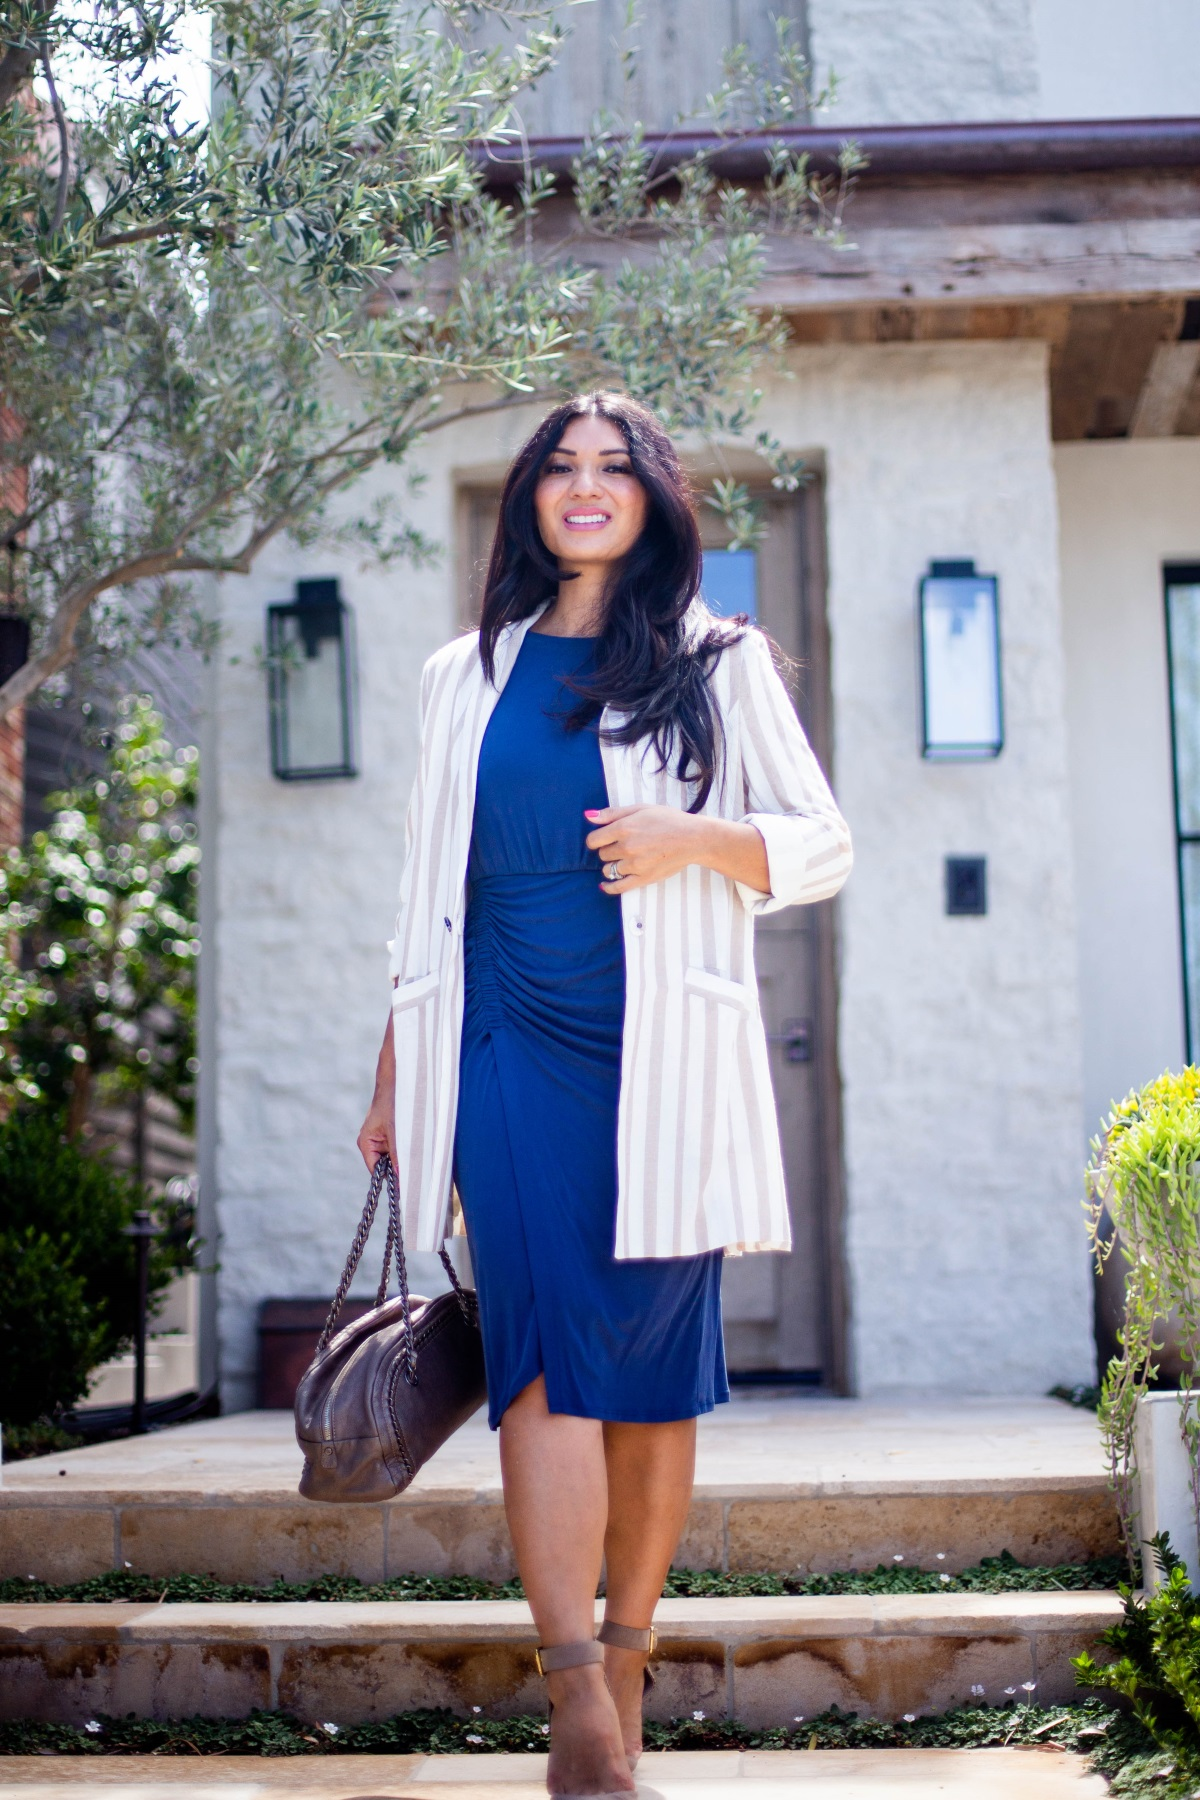 Bookmark this post ASAP if you have ever wanted to style the boyfriend blazer trend. Orange County Fashion Blogger Debbie Savage is sharing her favorite way to style the boyfriend blazer trend like a pro!  Boyfriend Blazer- Styling a Boyfriend Blazer- Long Boyfriend Blazer